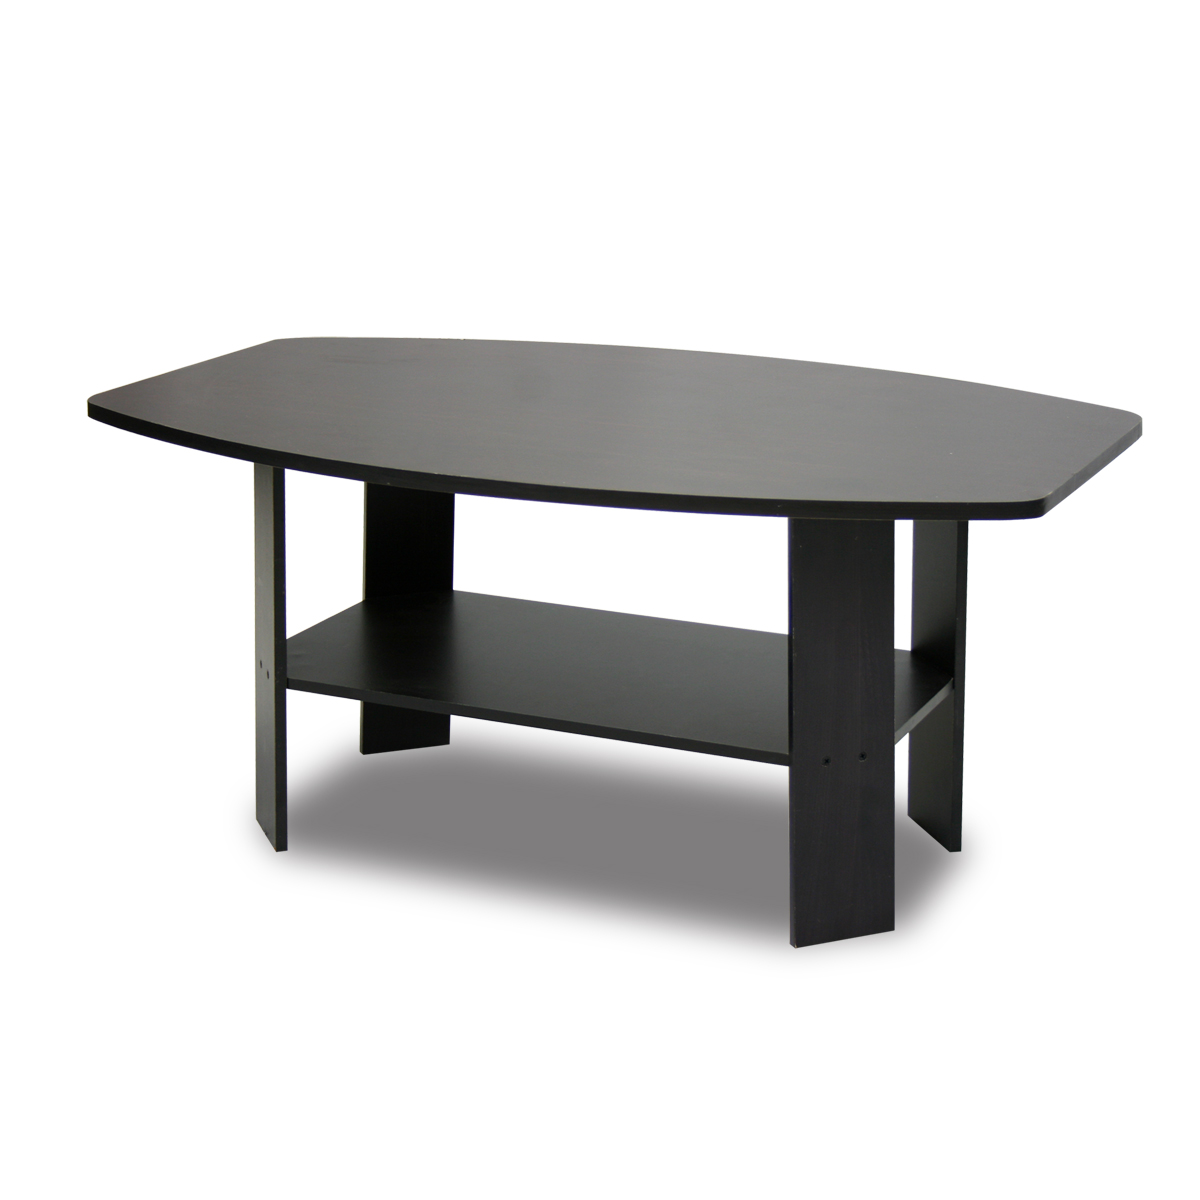 Furinno 11179 Simple Design Coffee Table by Furinno